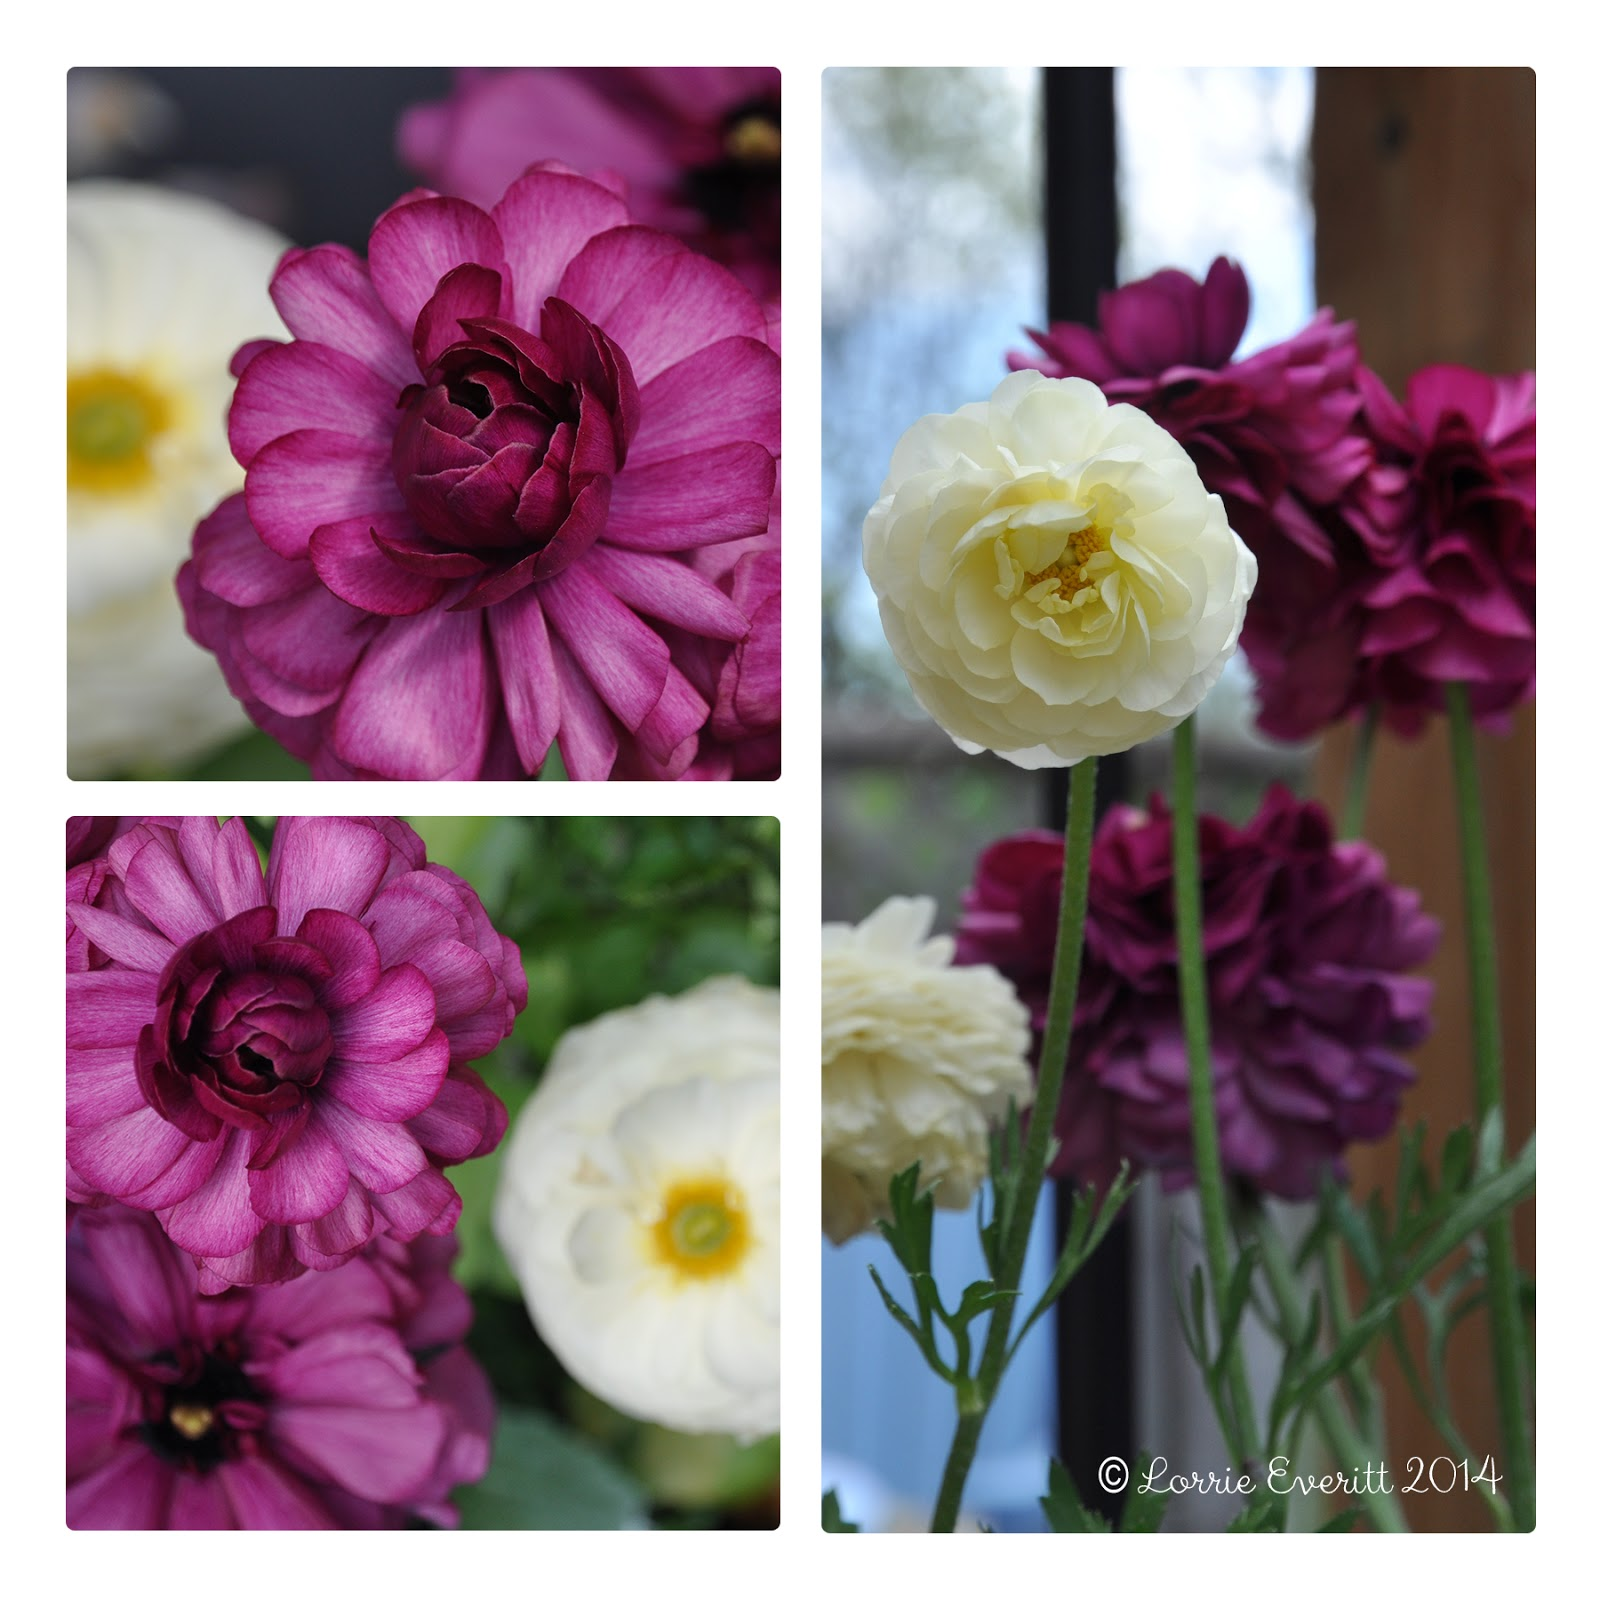 ranunculus photos by Lorrie Everitt